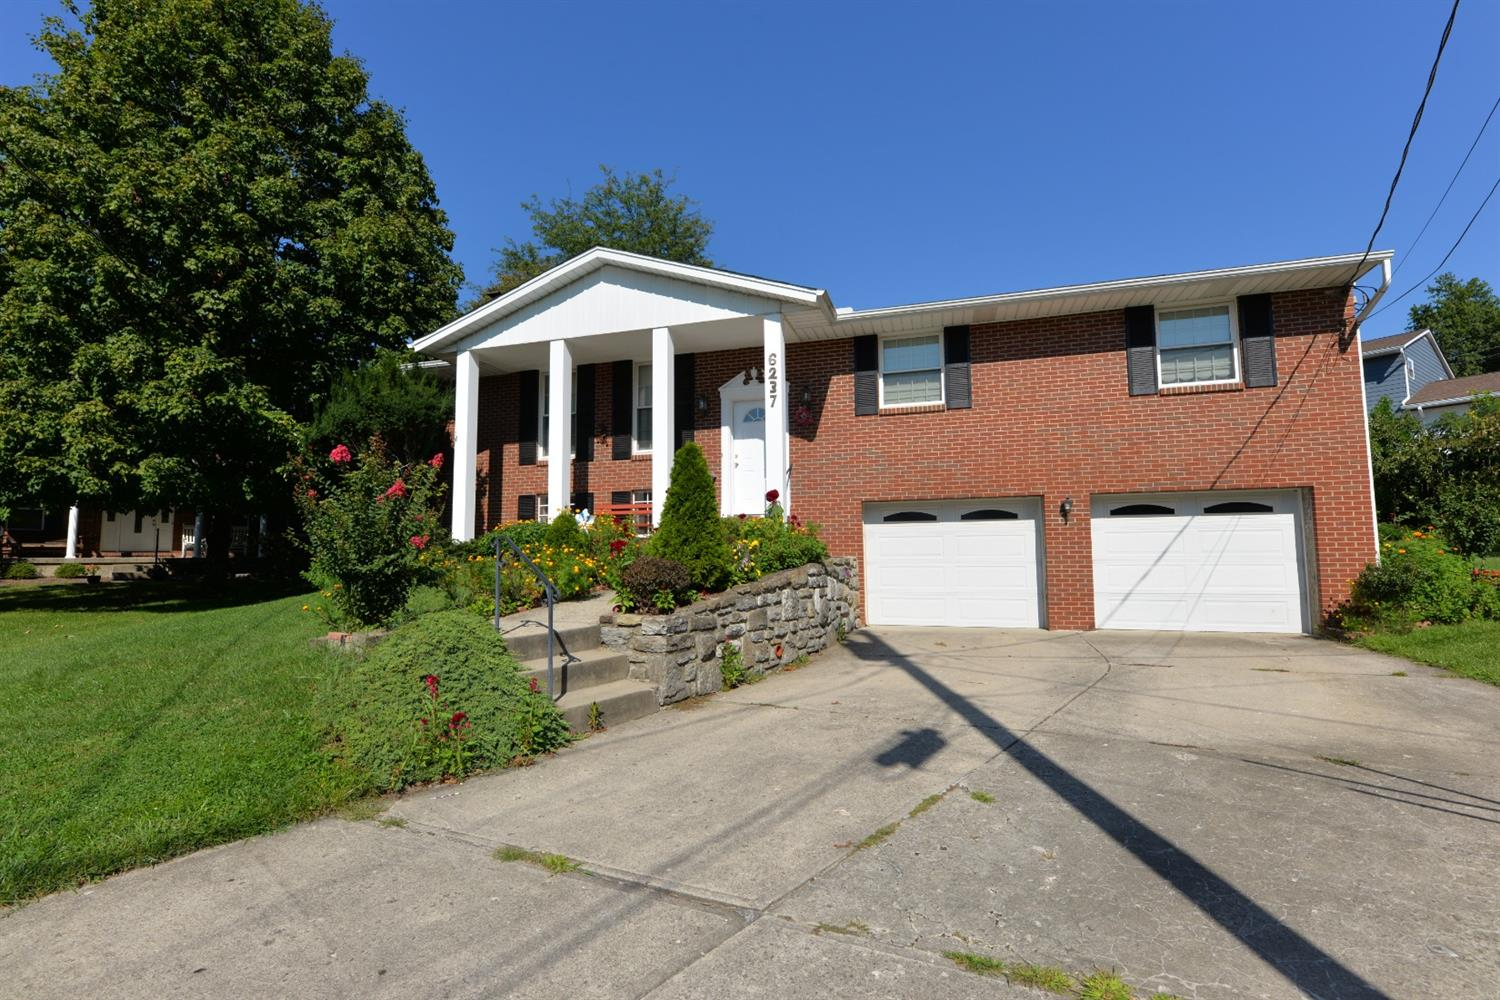 6237 Schunk Court, Green Twp, Ohio 45239, 3 Bedrooms Bedrooms, 8 Rooms Rooms,2 BathroomsBathrooms,Single Family Residence,For Sale,Schunk,1714971